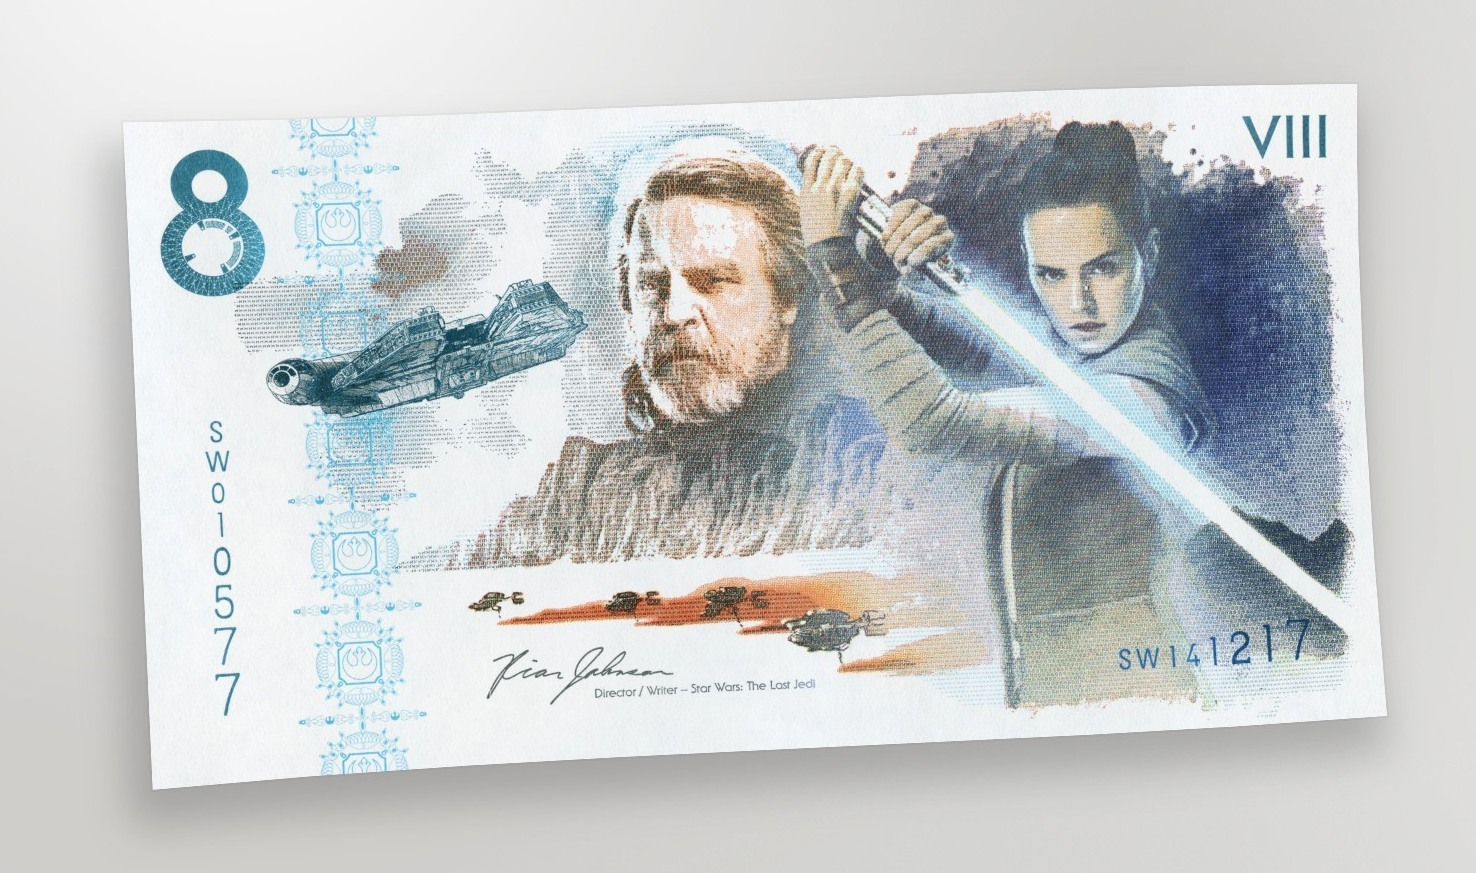 Limited Edition Star Wars Money Is The Best Christmas Gift